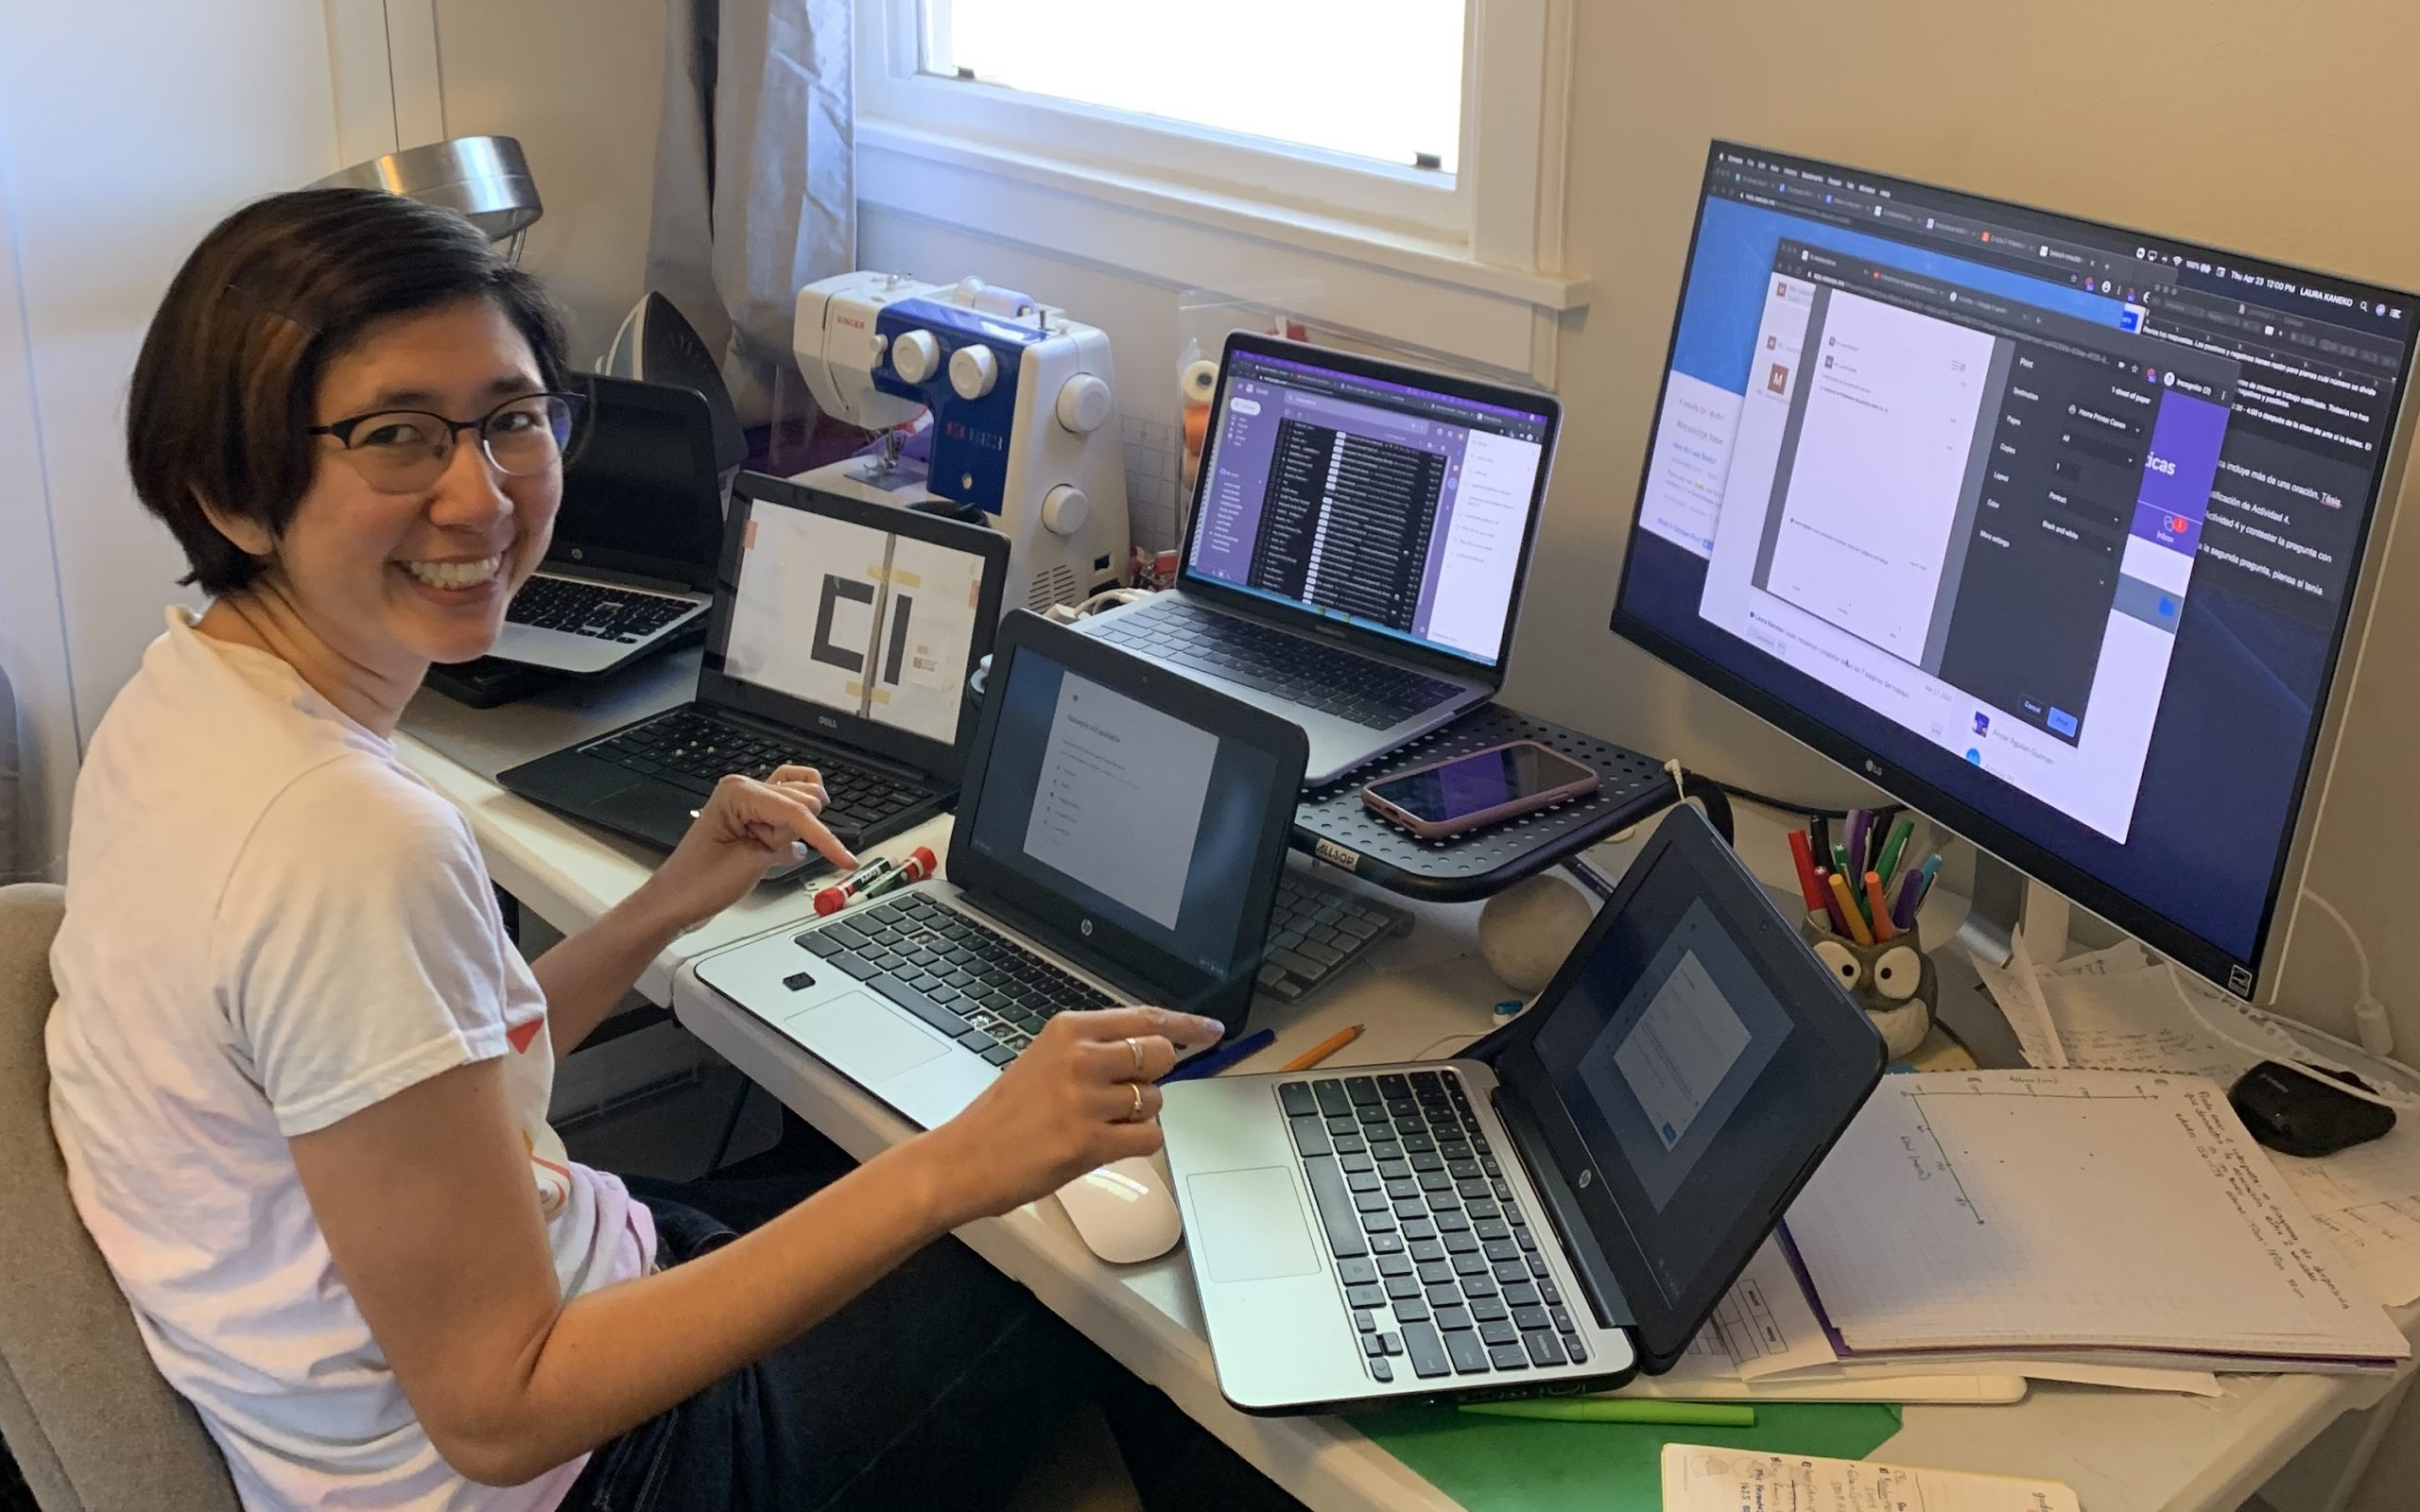 A smiling East Asian woman with a bob haircut and glasses is sitting at a large desk with several Chromebook laptops in front of her, plus a big monitor.